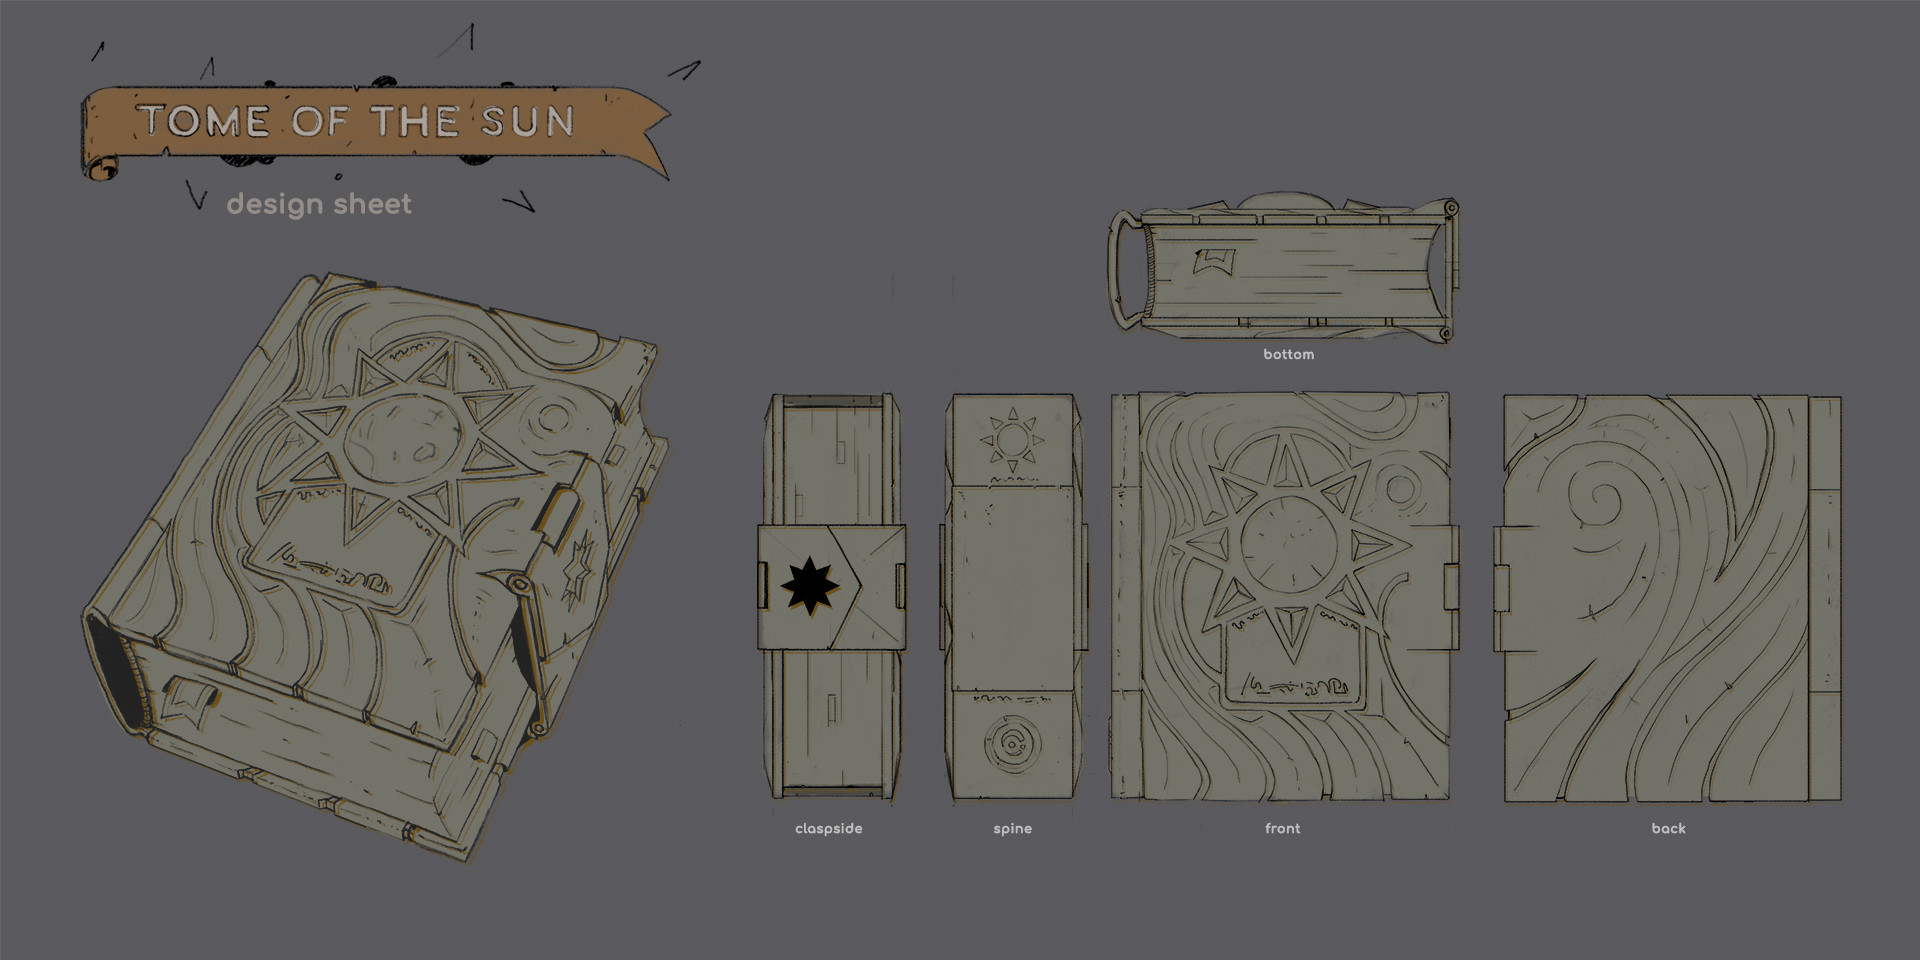 Michael loos tome of the sun design sheet